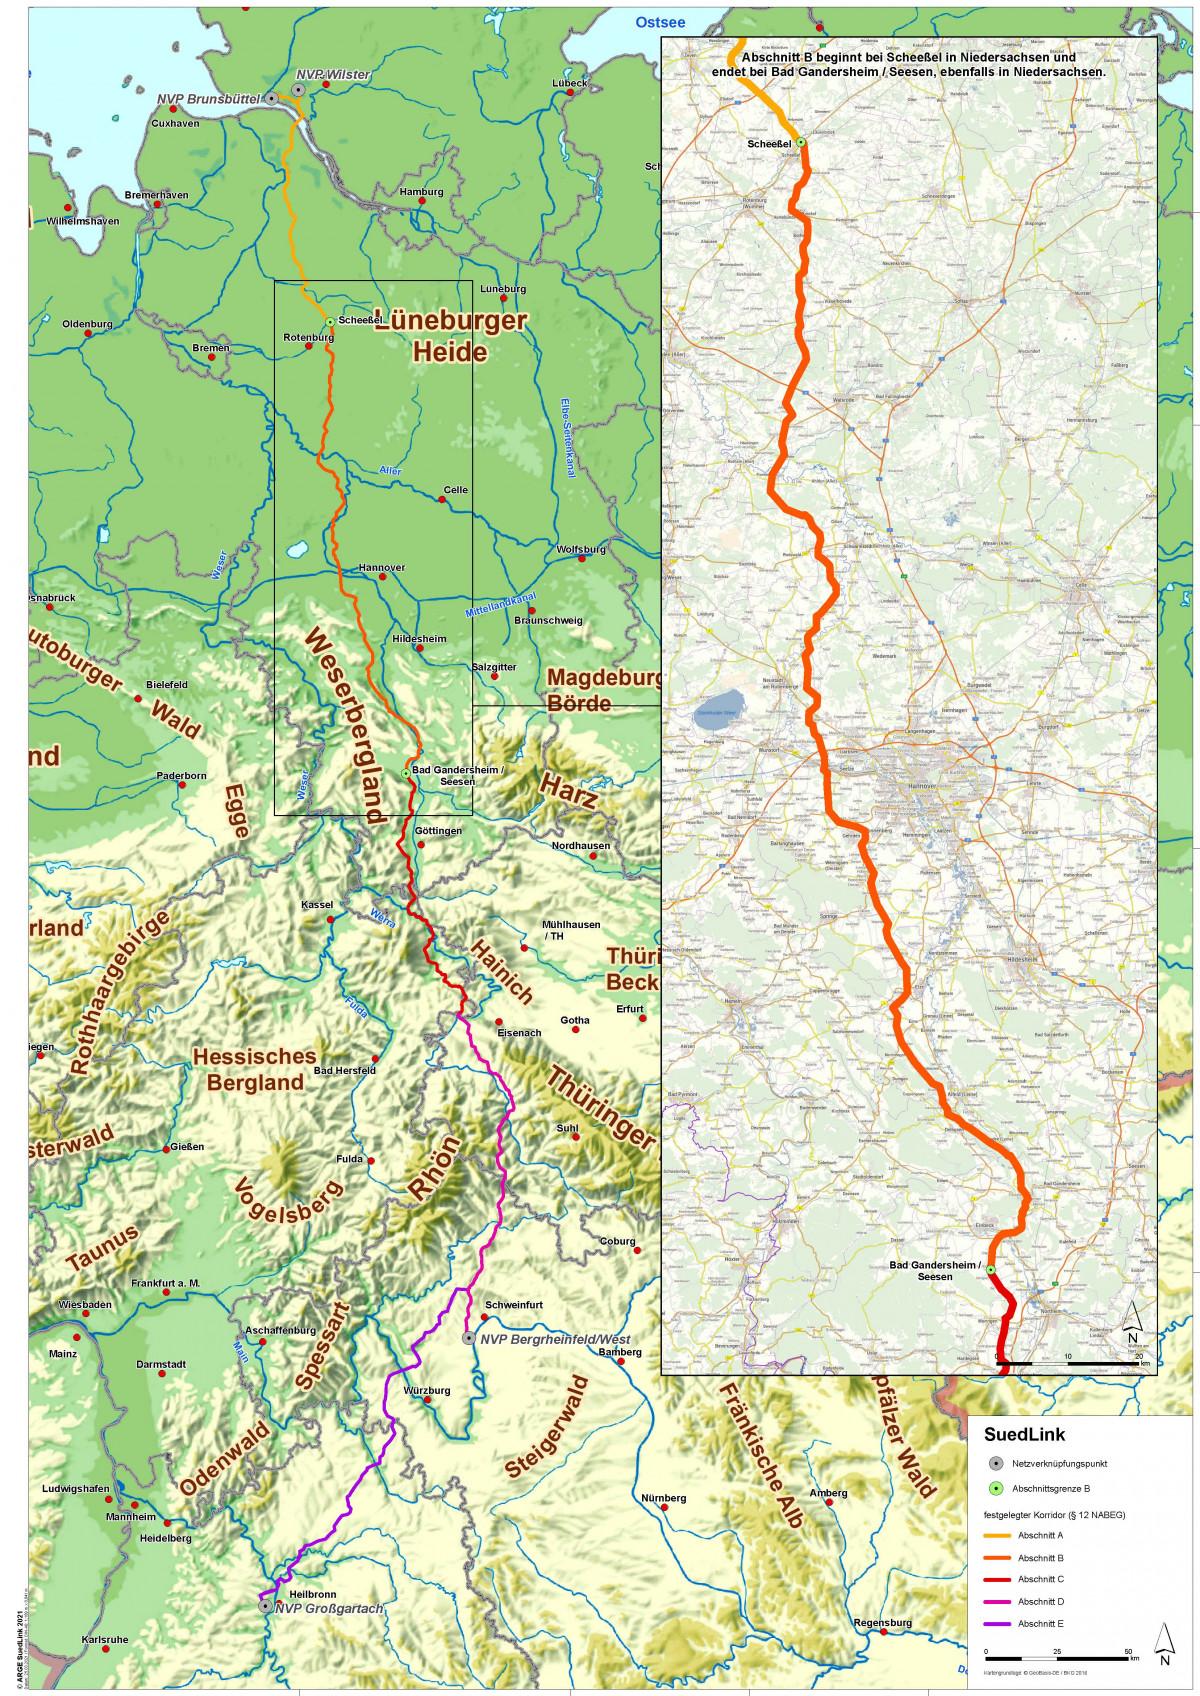 Map shows SuedLink power line route in Germany. Source: TenneT / TransnetBW.